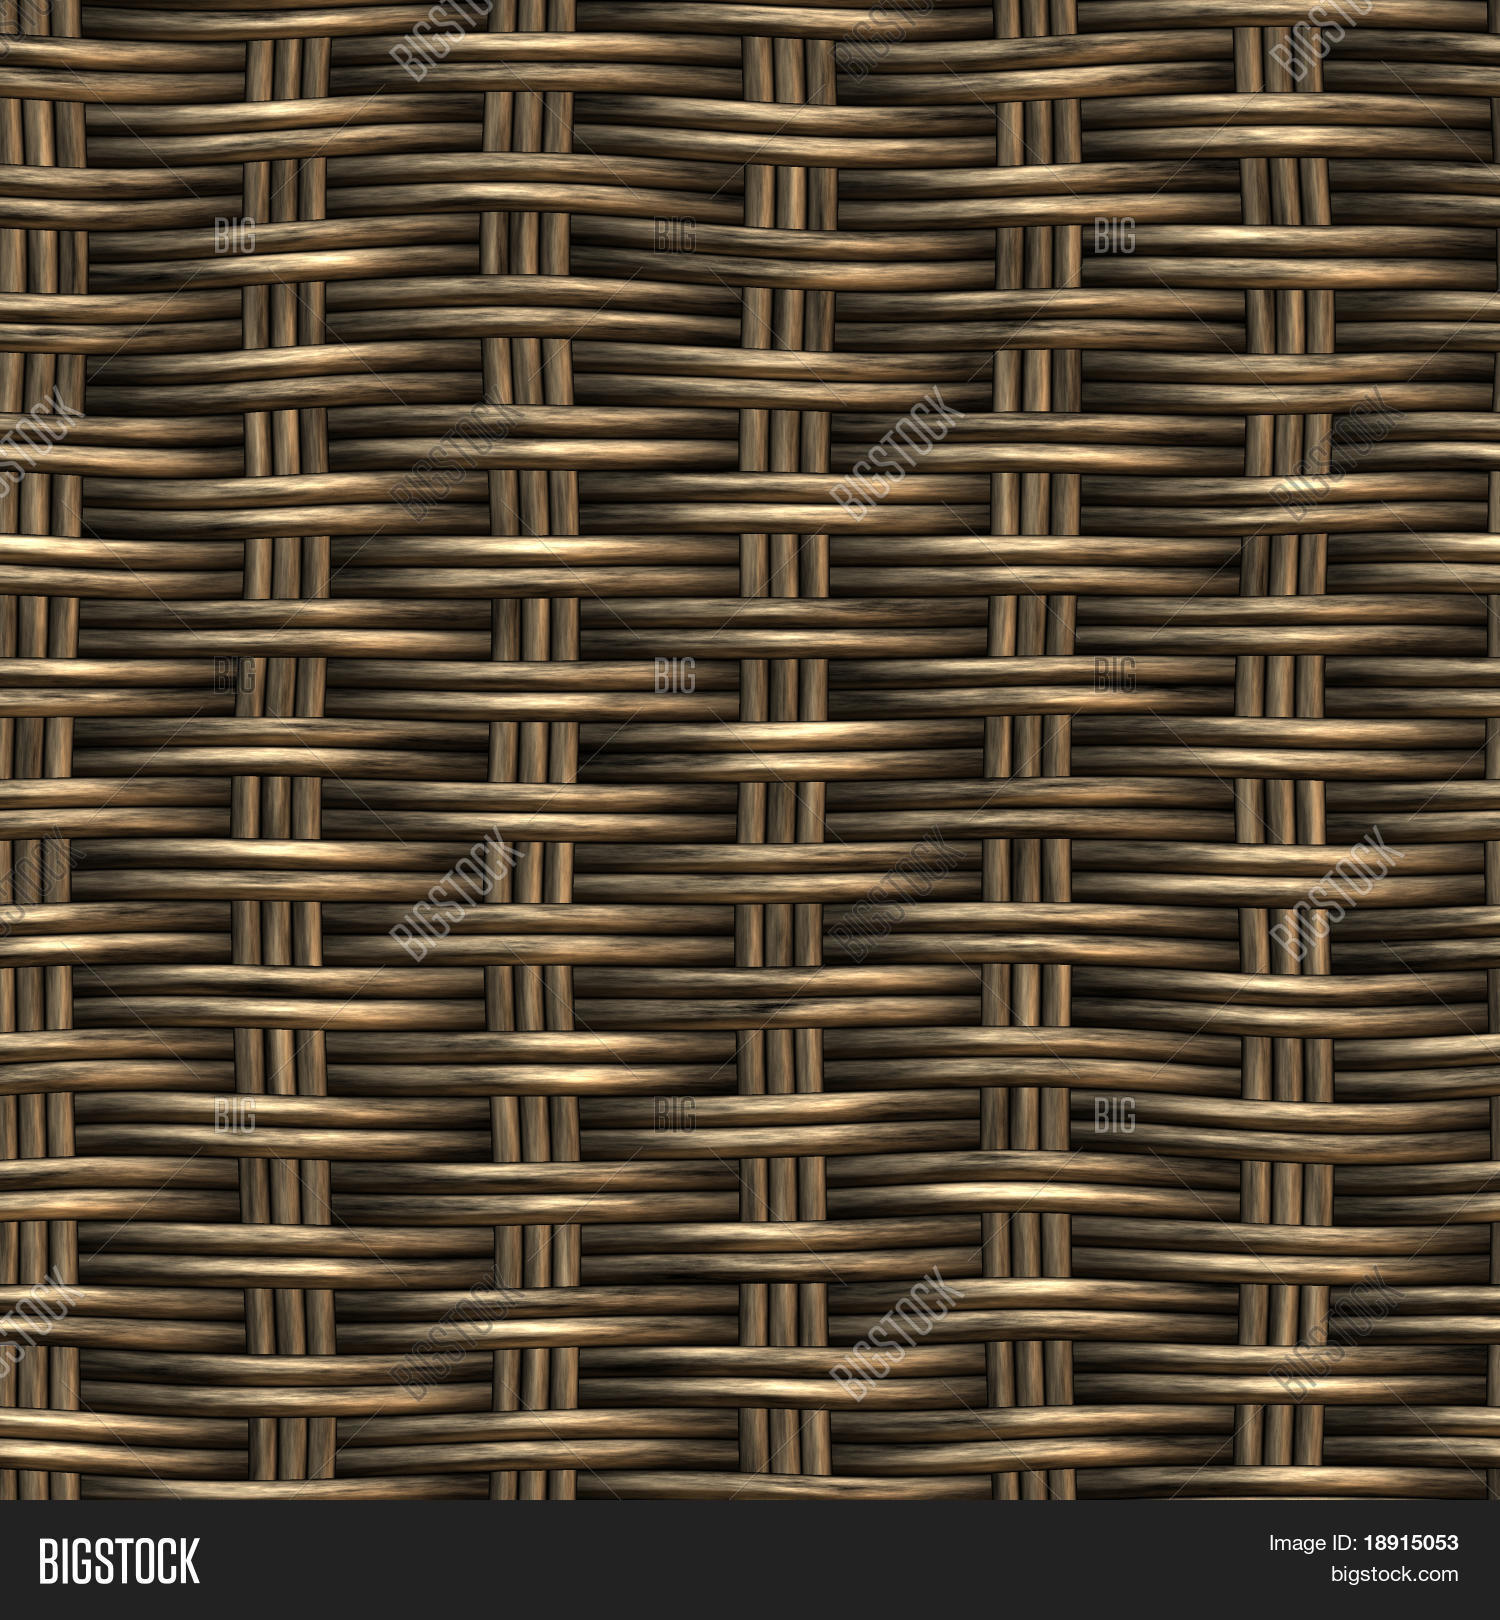 Rattan Basket Weaving Patterns : Wicker basket weaving pattern image photo bigstock